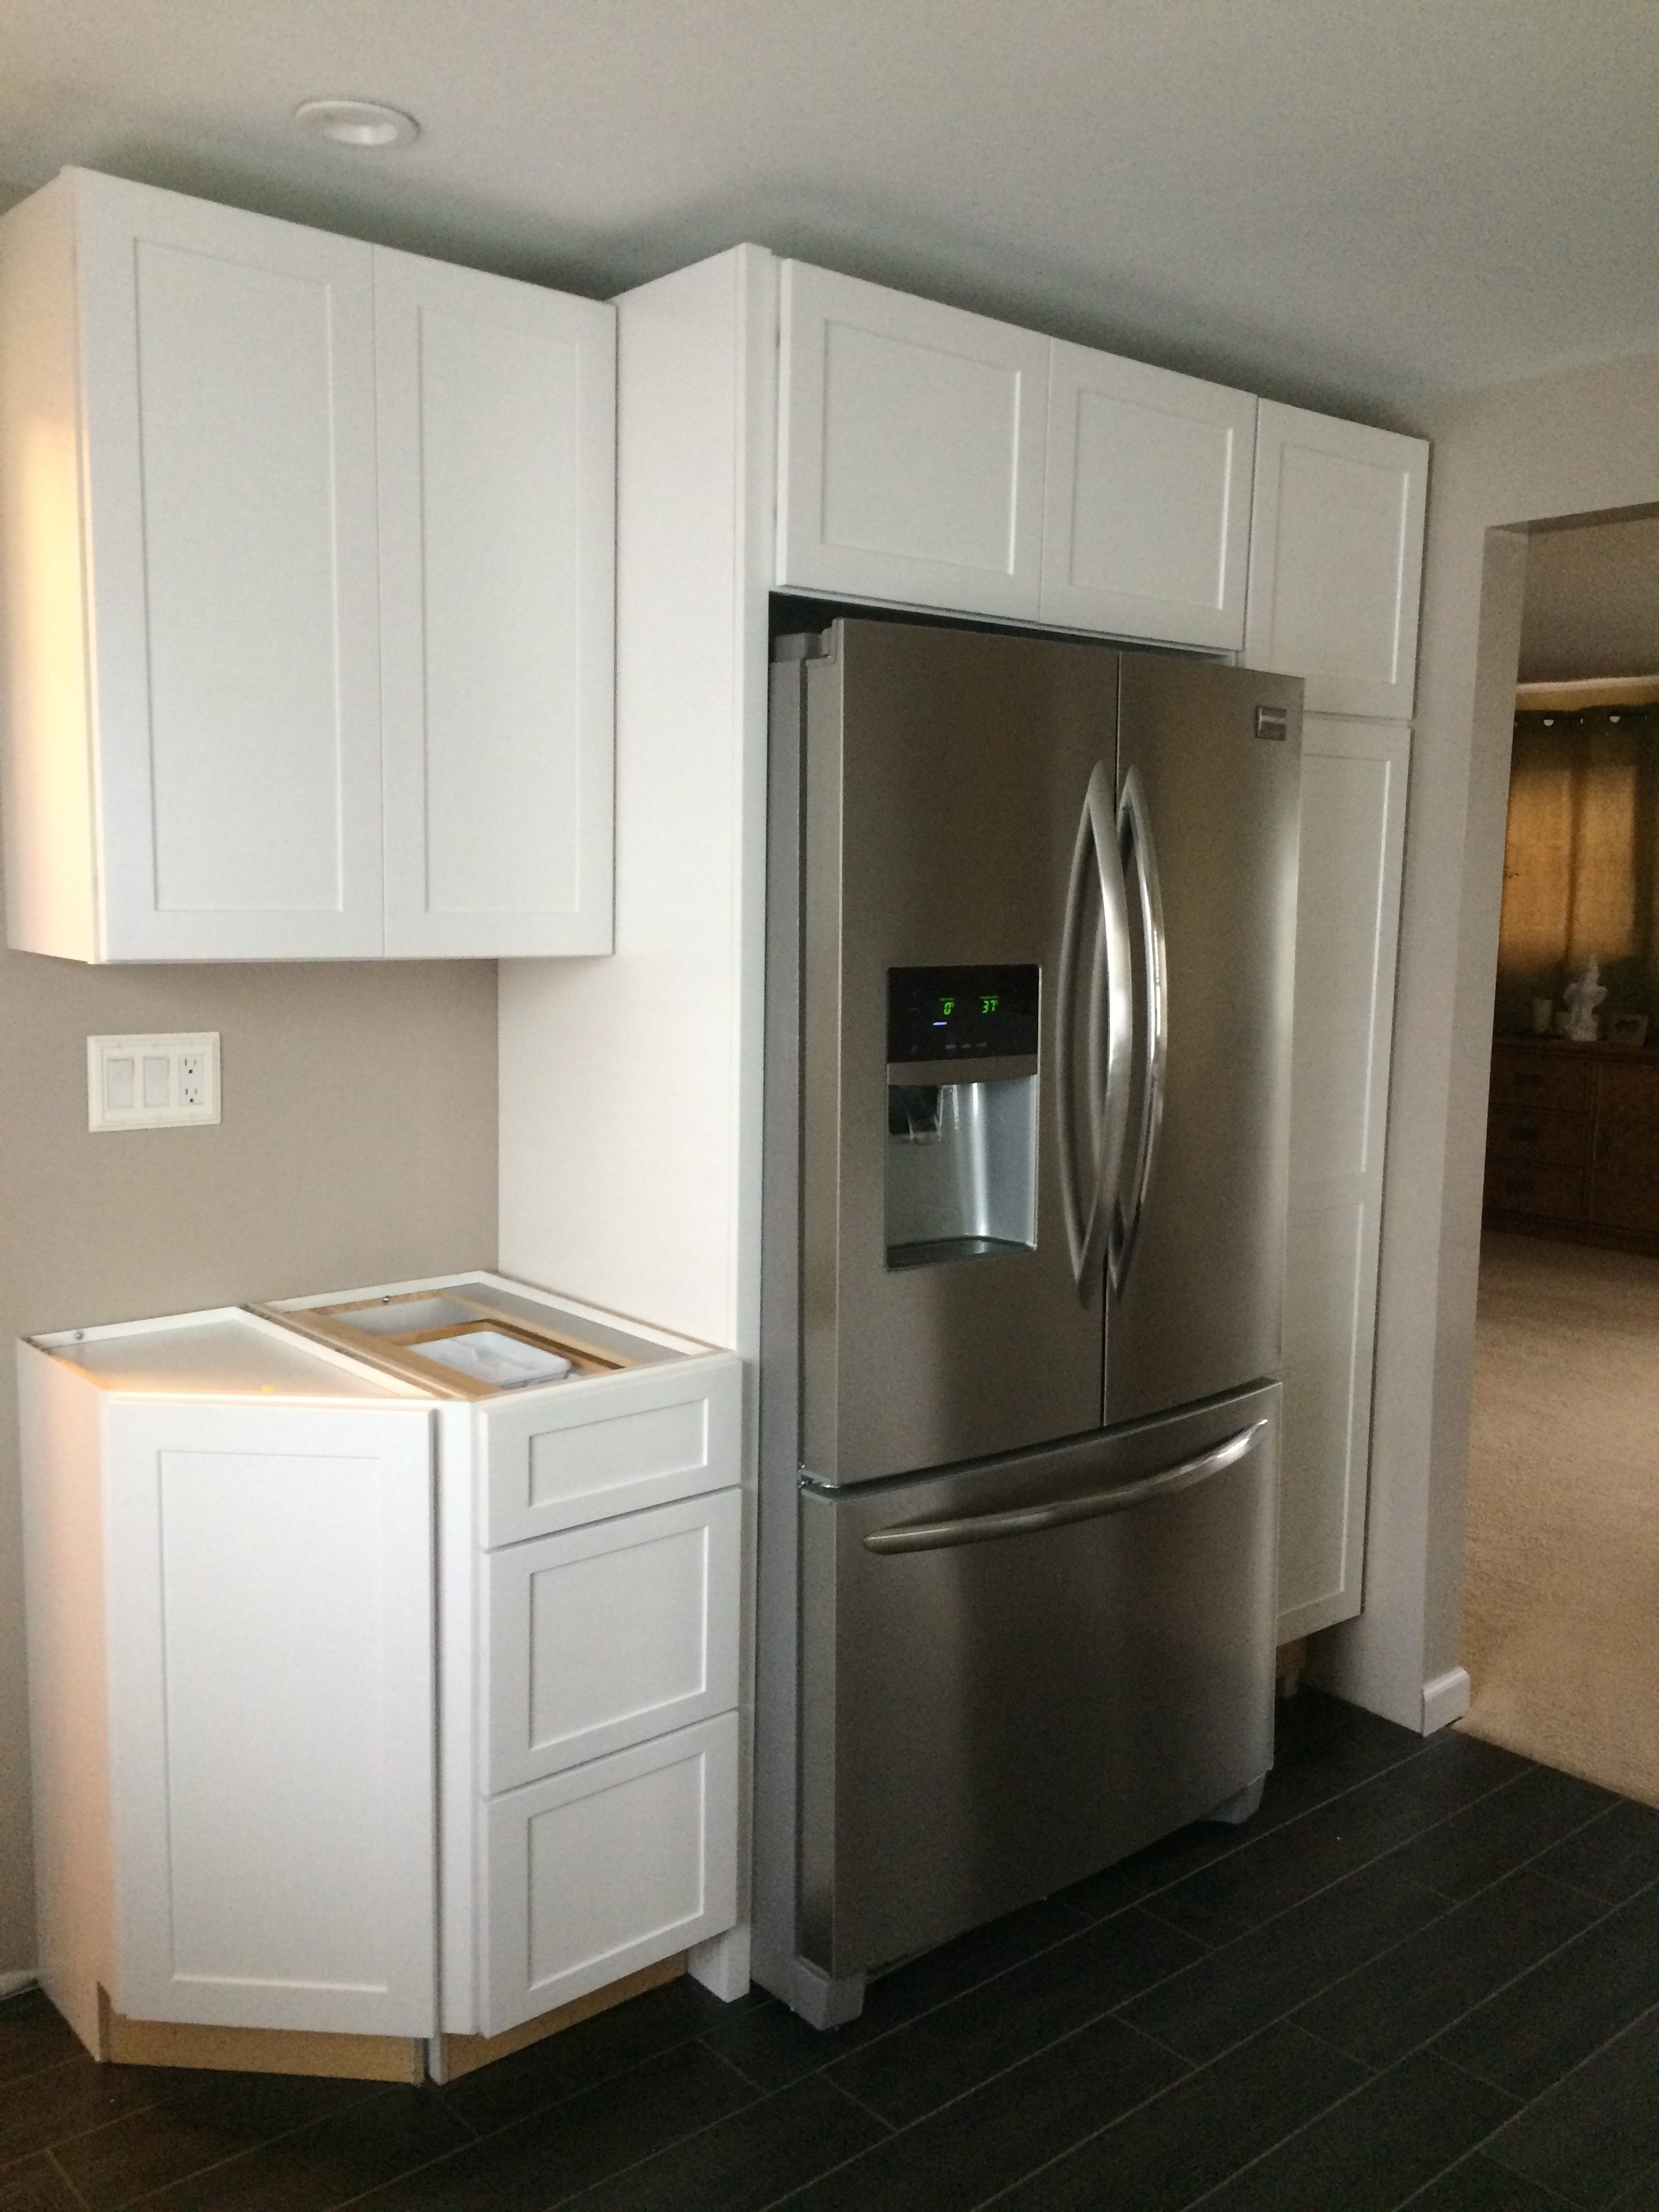 kitchens reviews go homesfeed refrigerator on kitchen set cabinets to